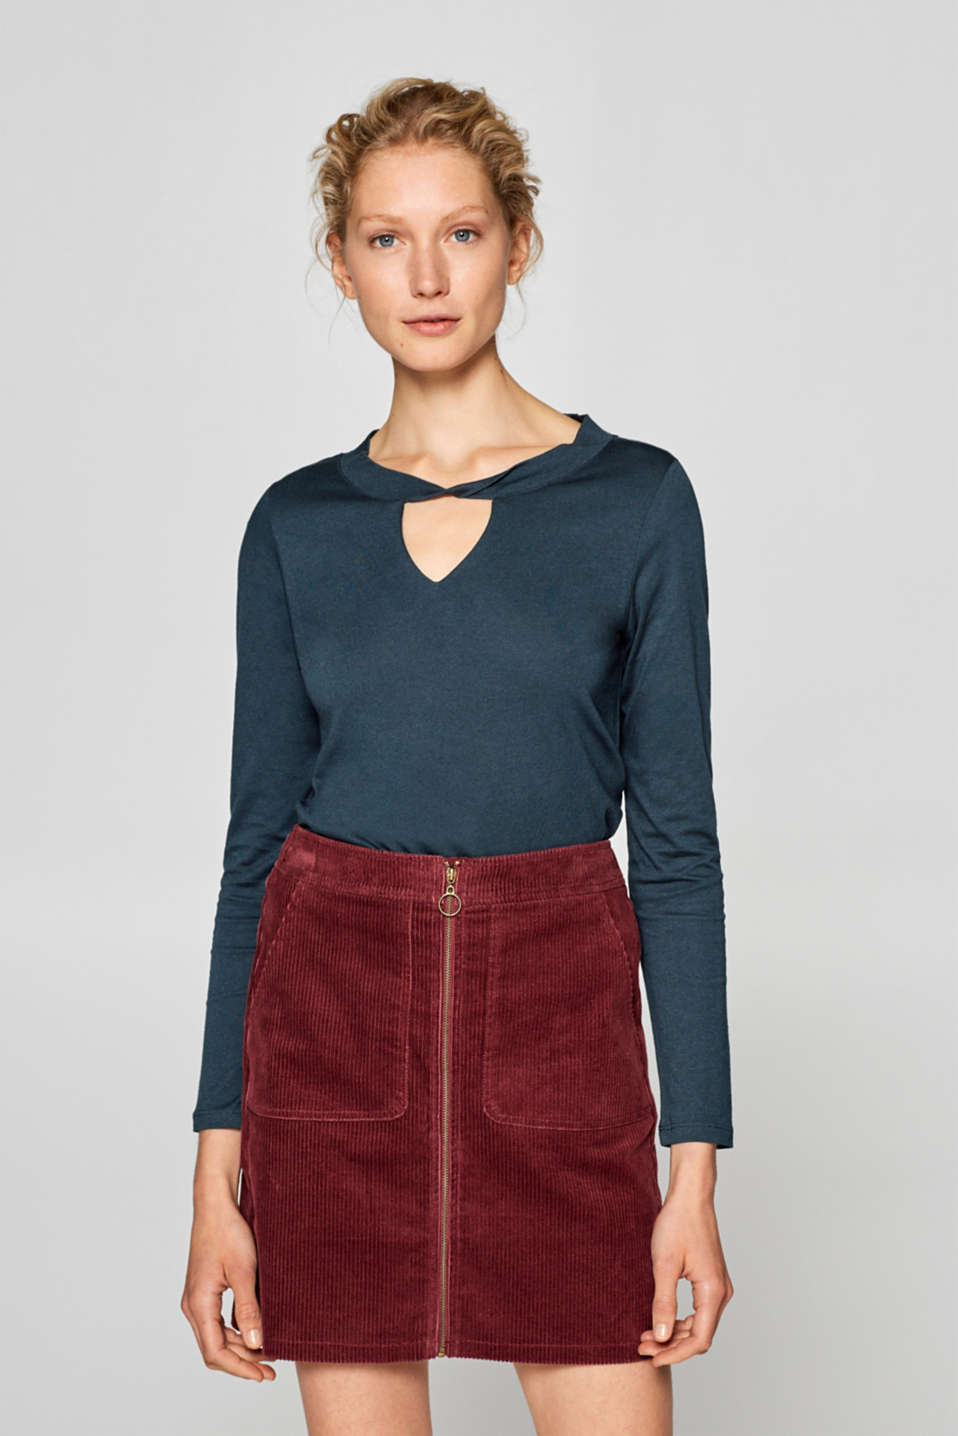 Esprit - Long sleeve top with a cut-out at the neckline